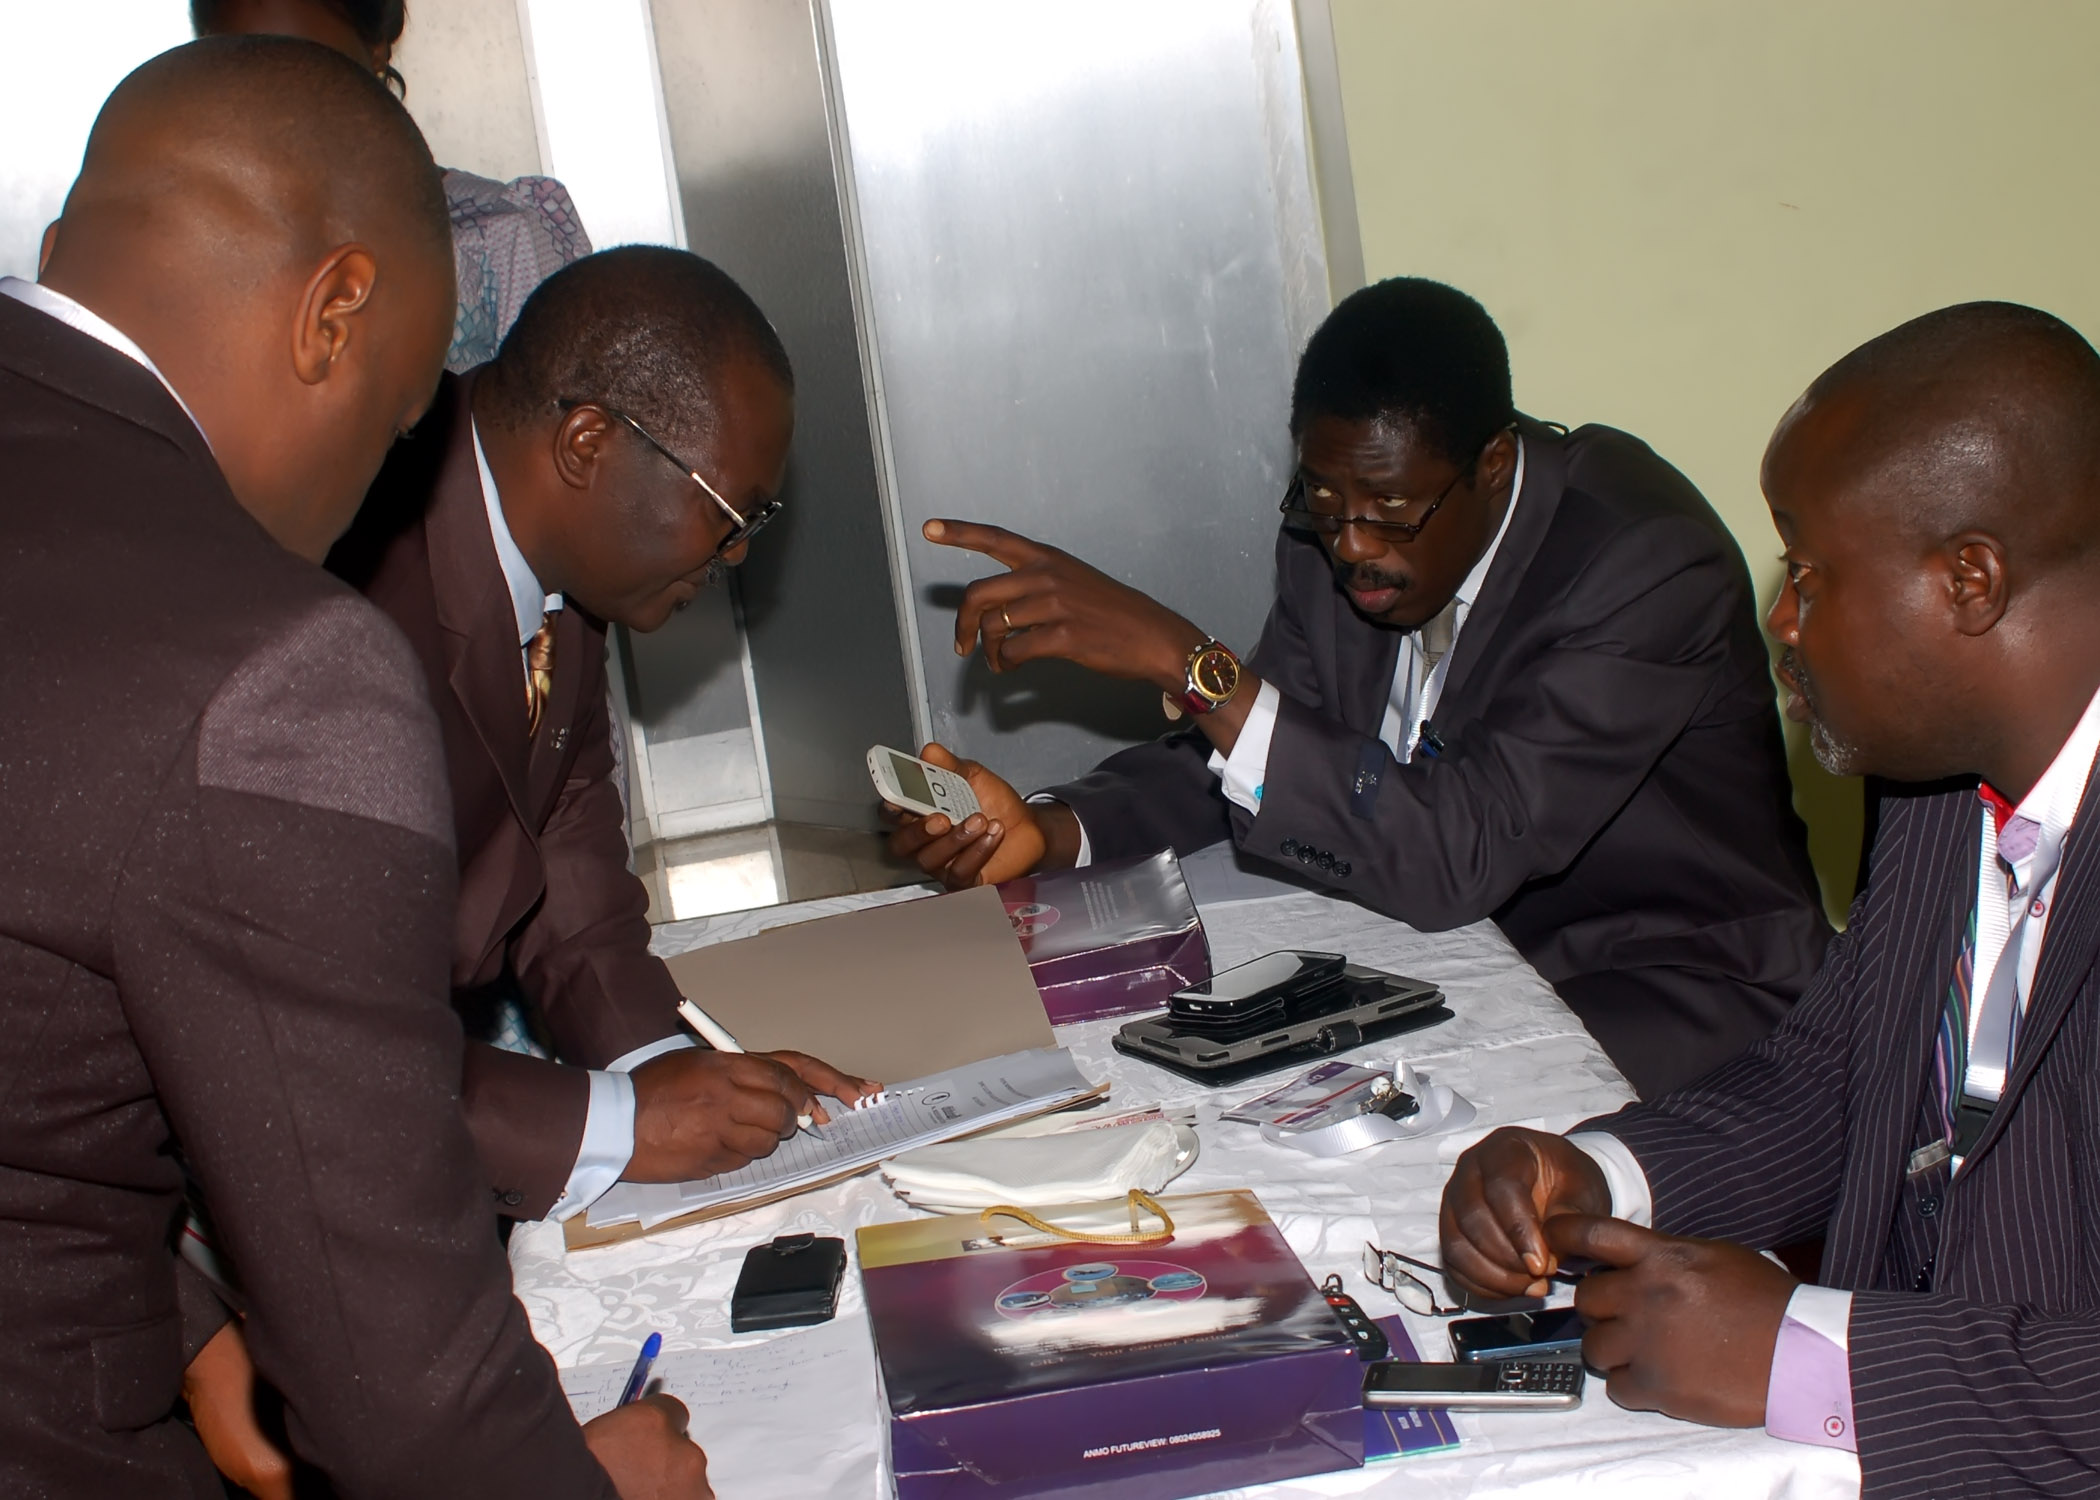 Members of the panel of judges deciding the winners of d Nat'l President's award